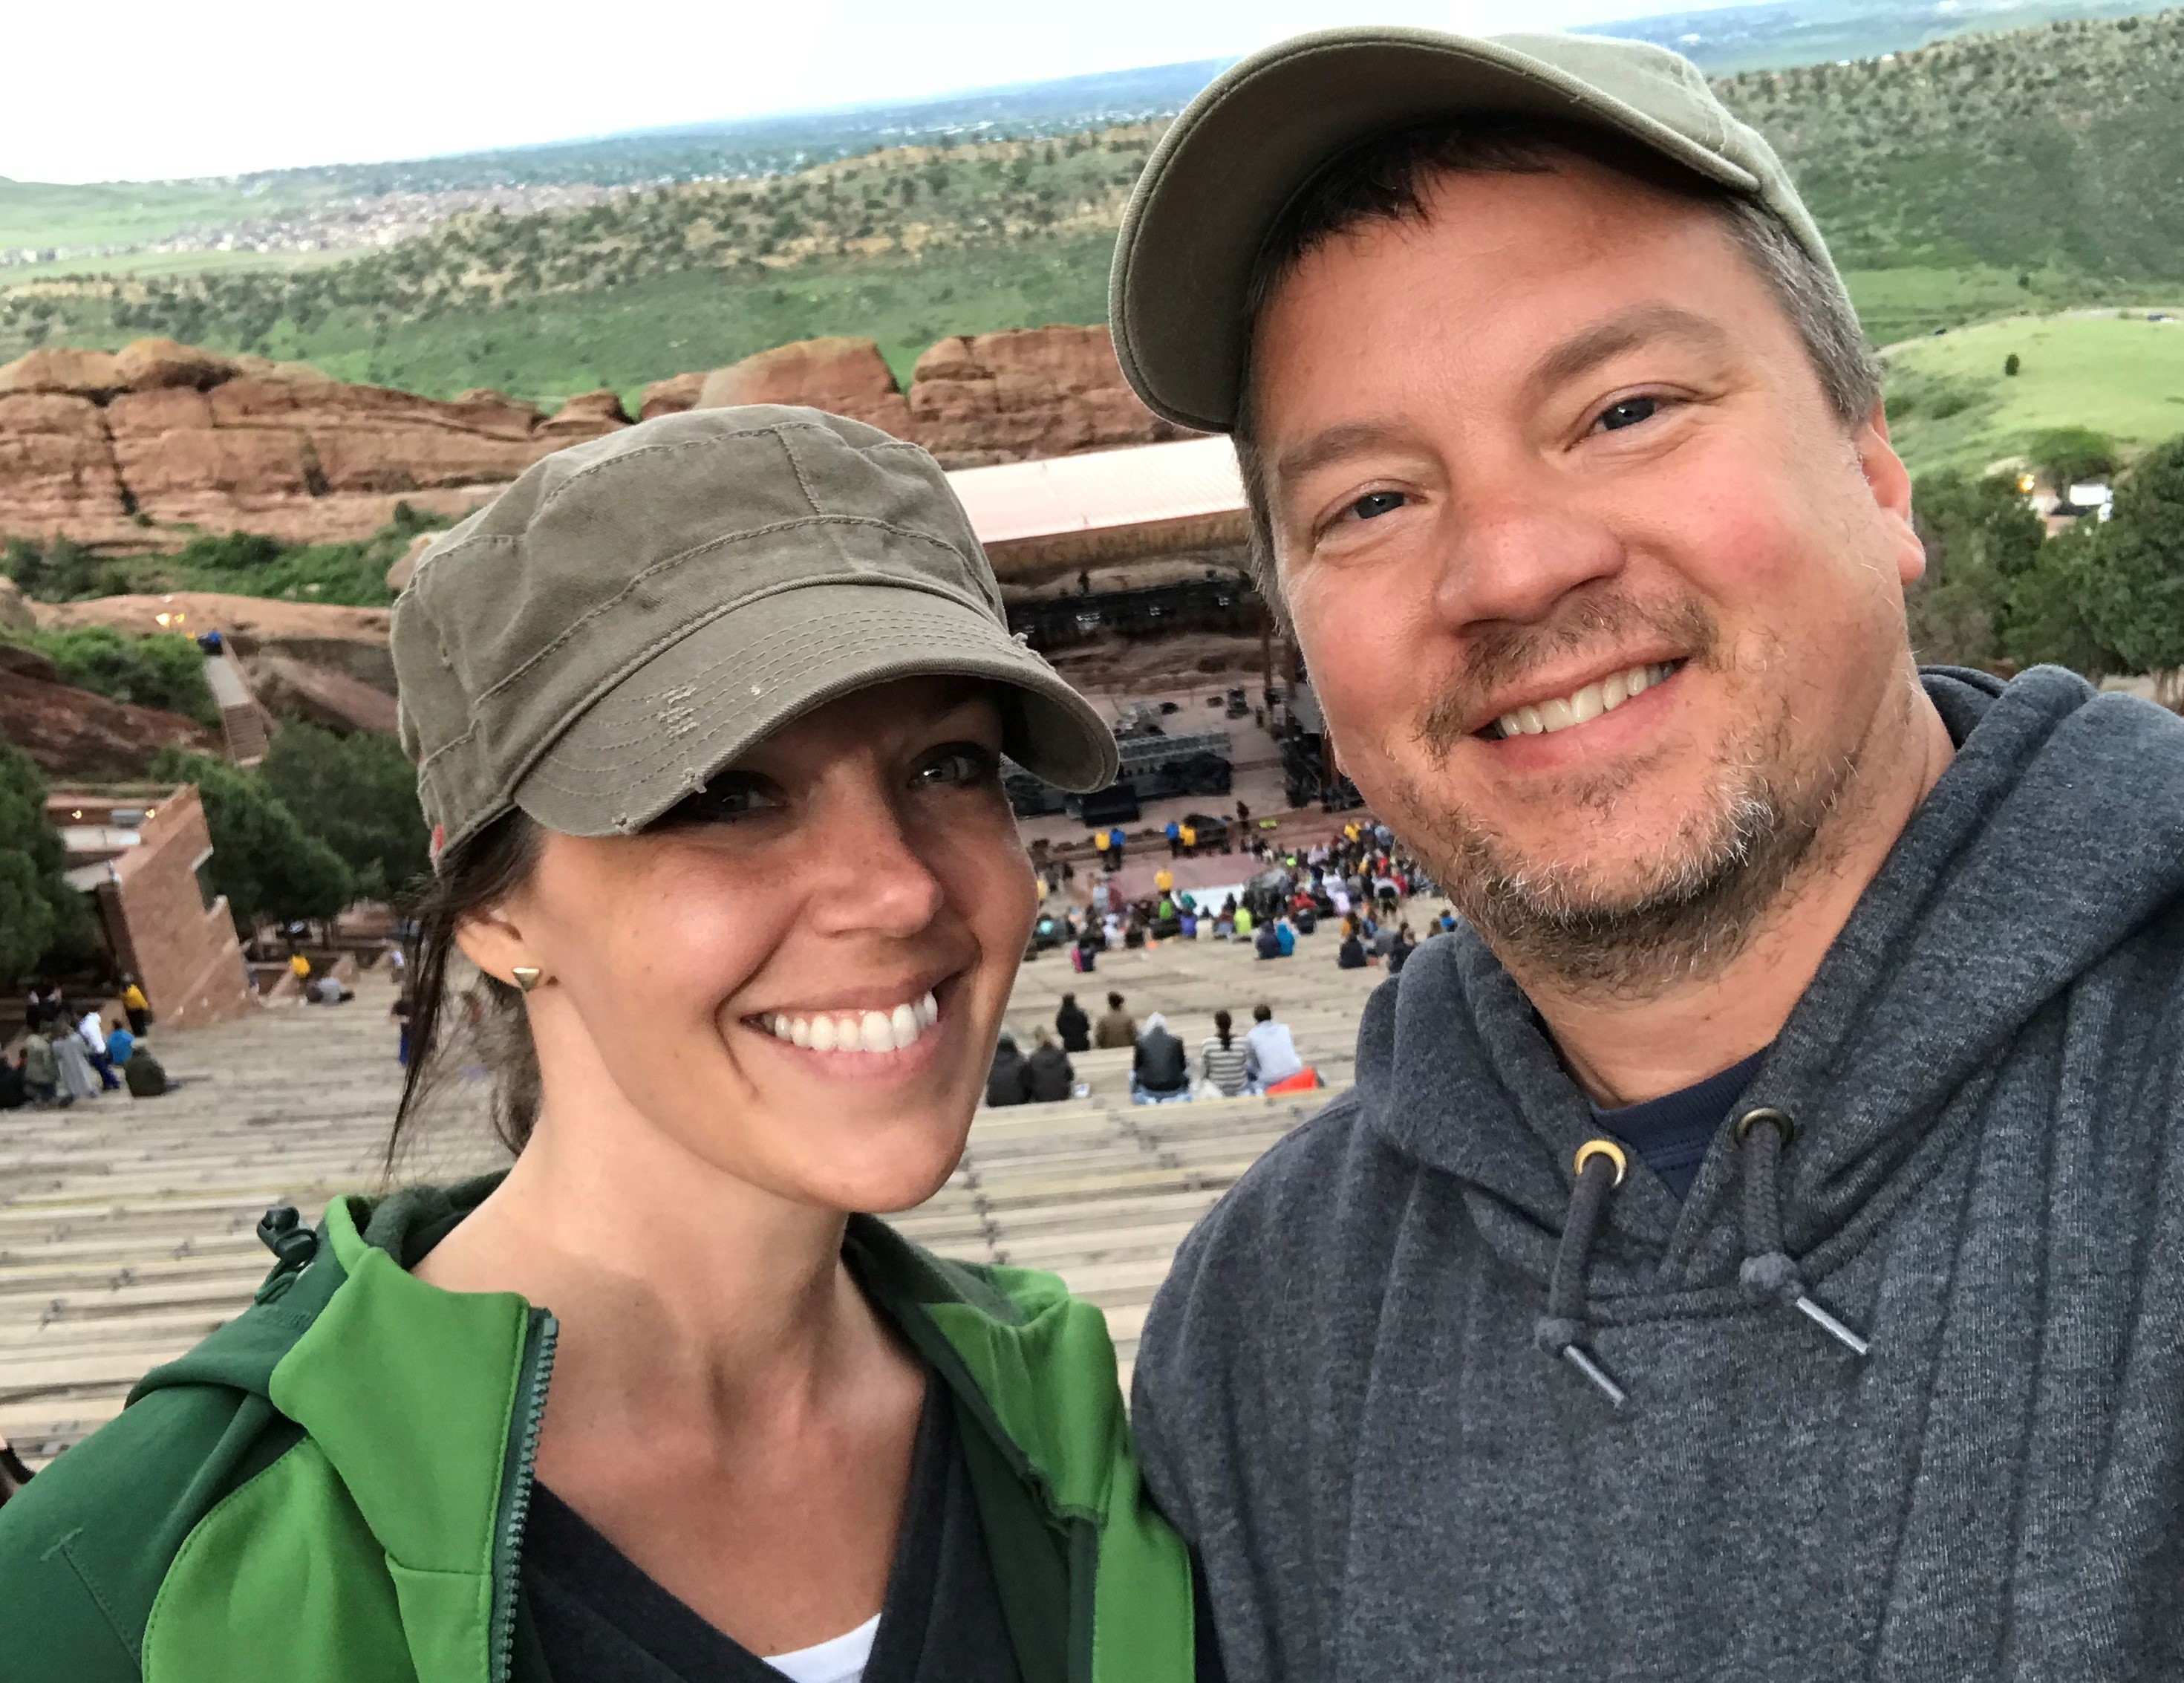 Steve and Corey Red Rocks